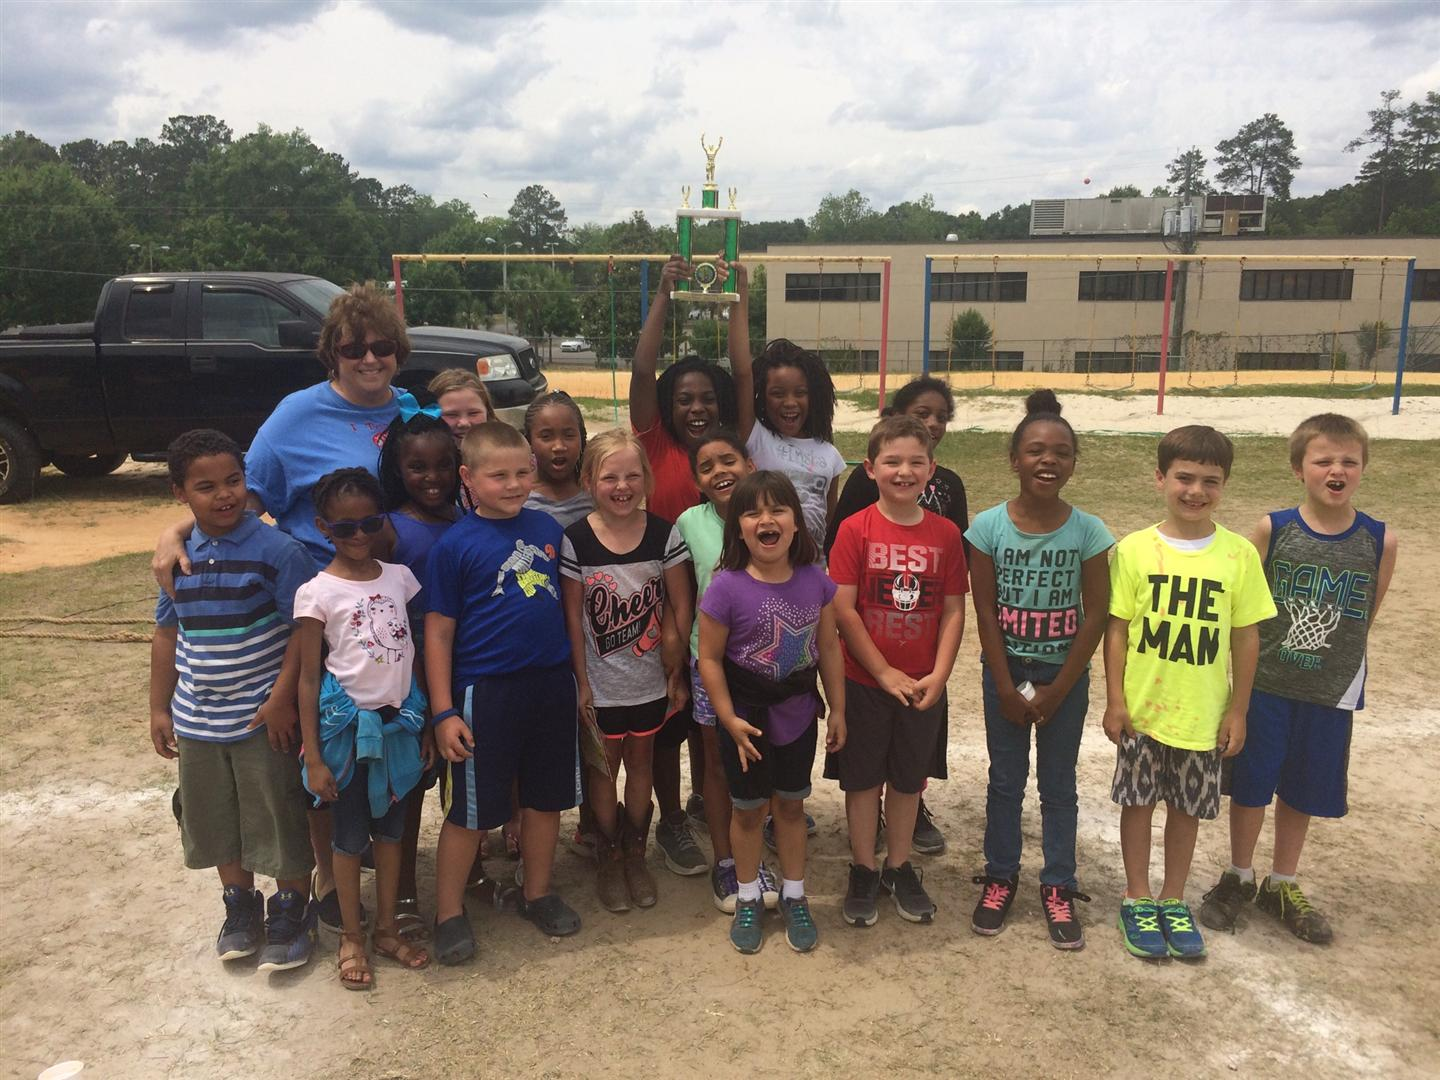 Mrs. Mathis second grade class with their field day trophy